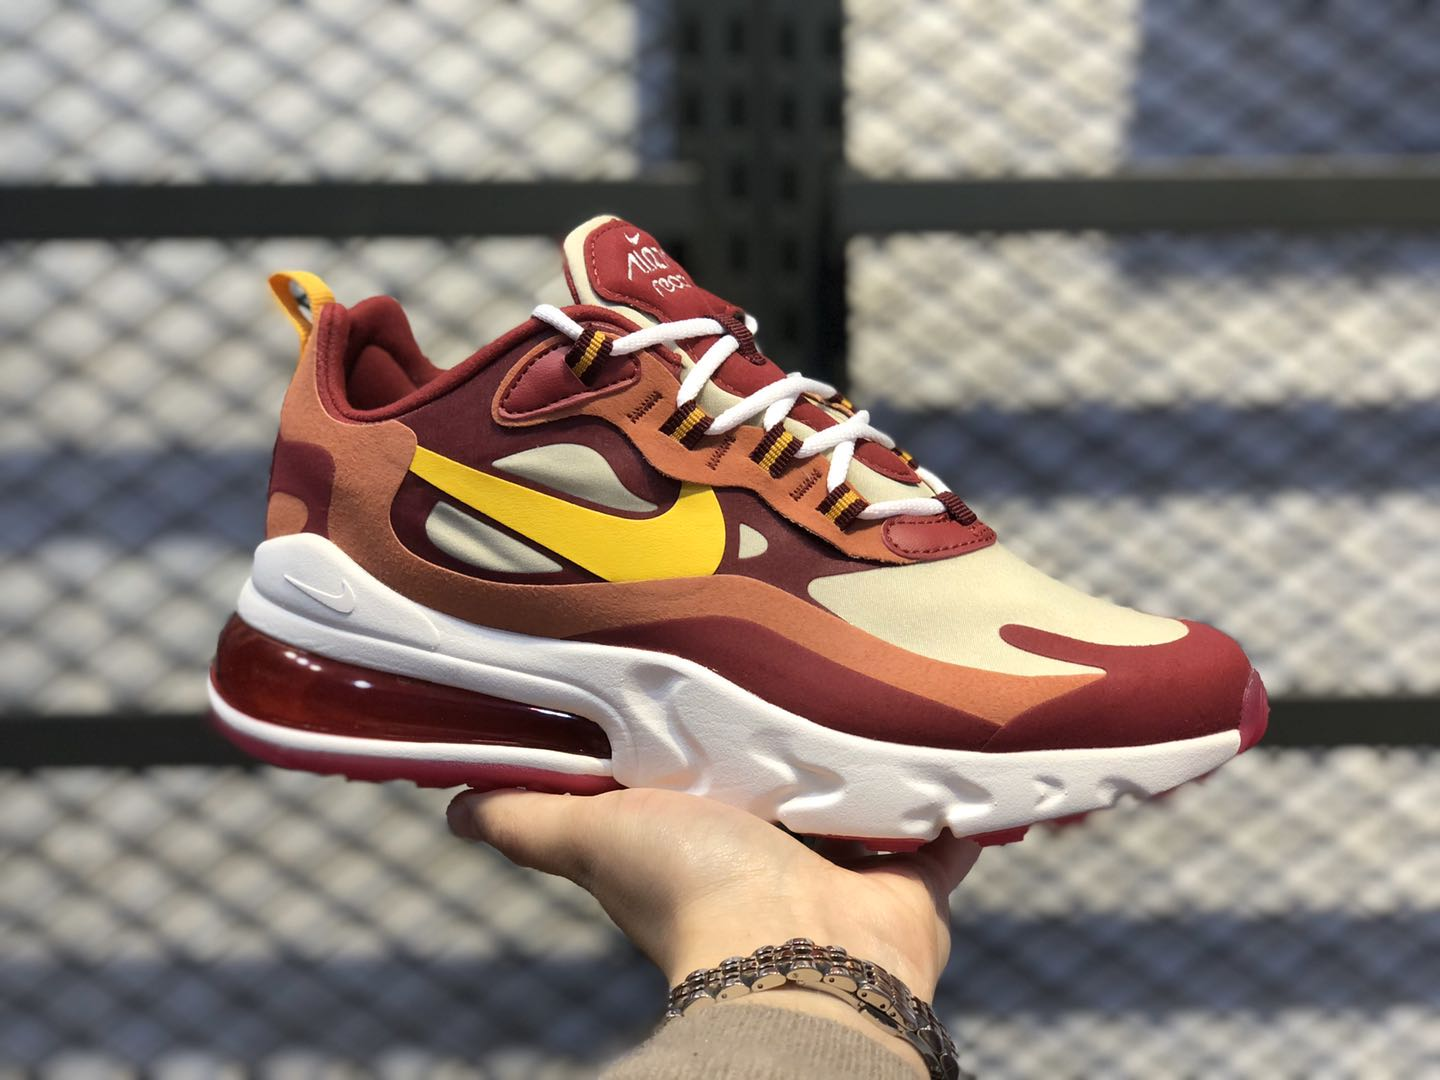 Nike Air Max 270 React Noble Red/Team Gold/Dusty Peach/Dark Sulfur AO4971-601